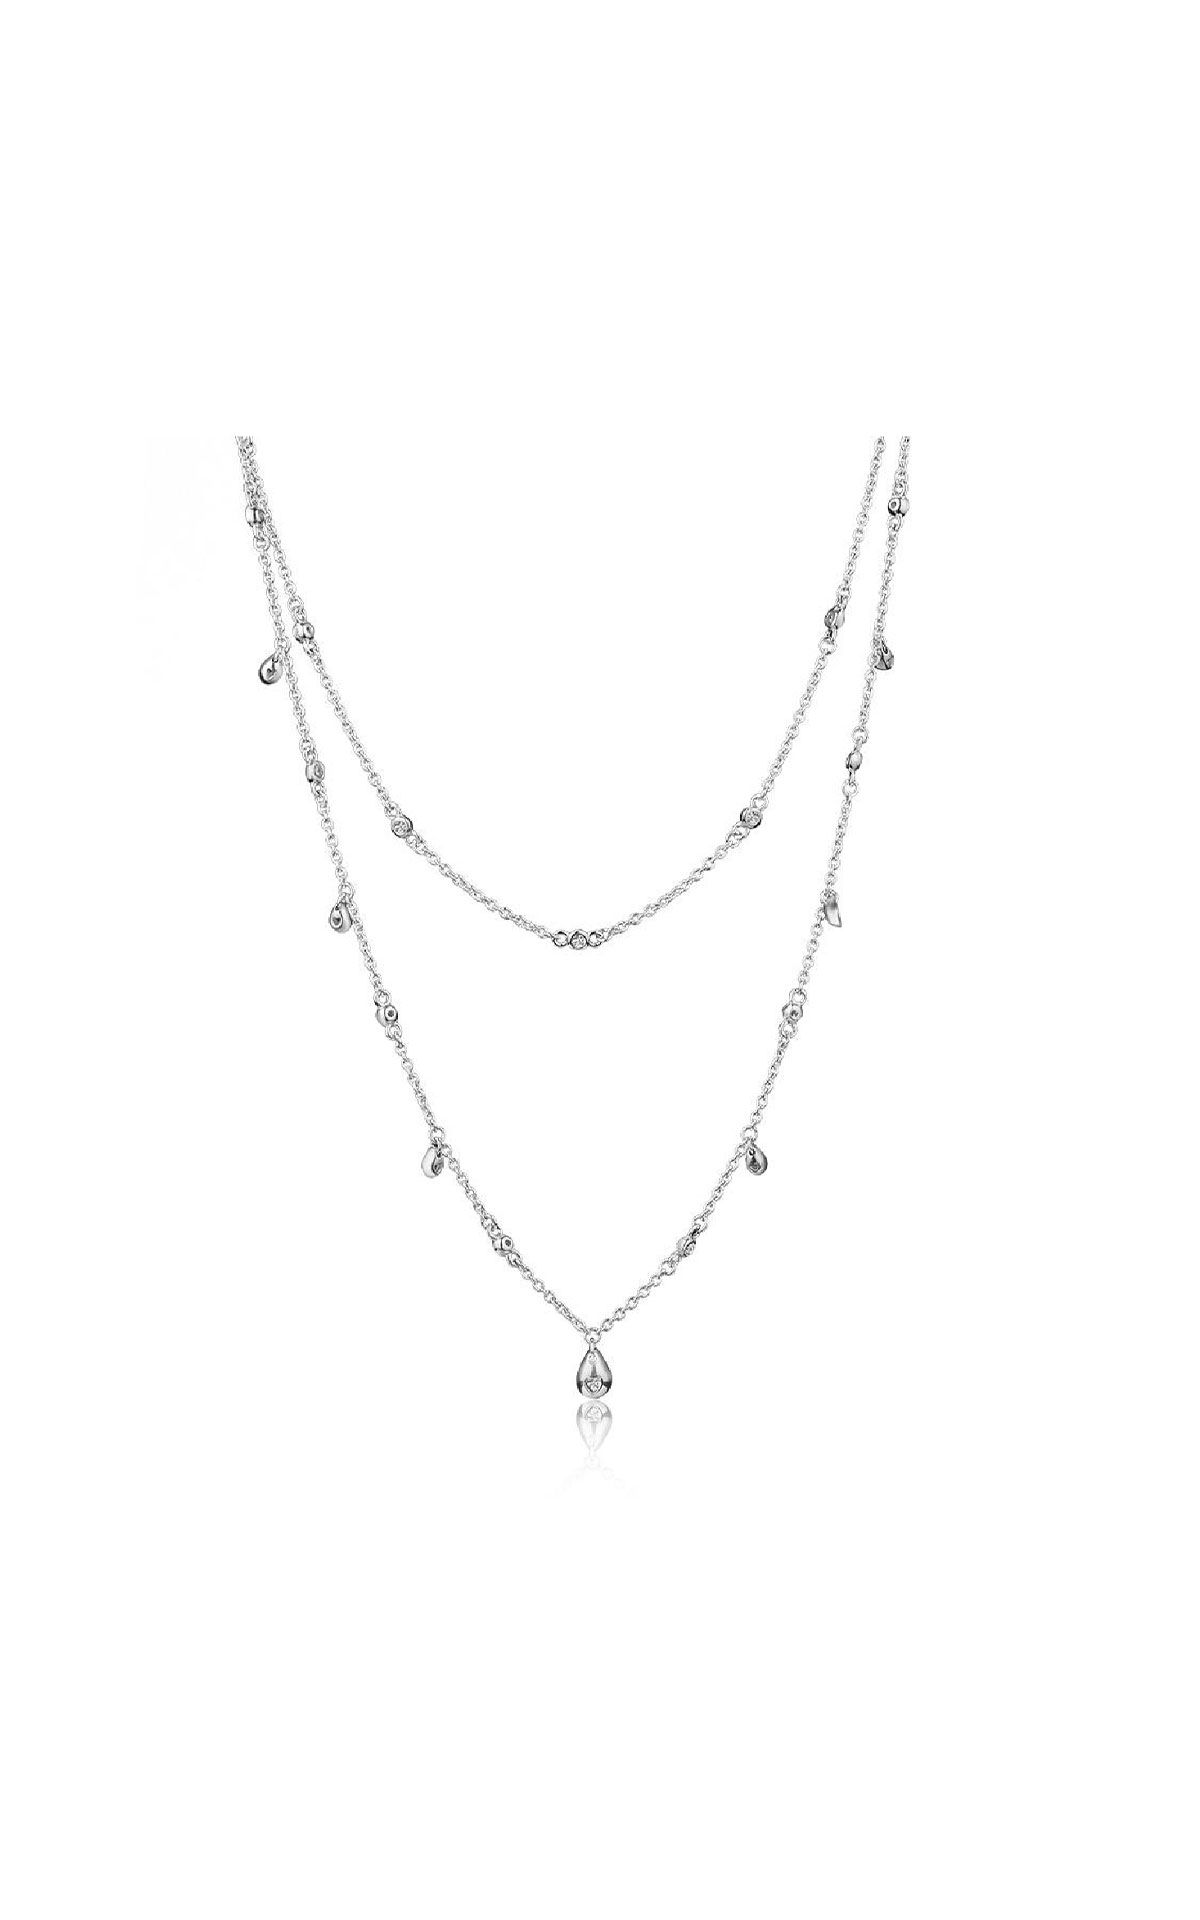 Pandora Chandelier droplets necklace from Bicester Village